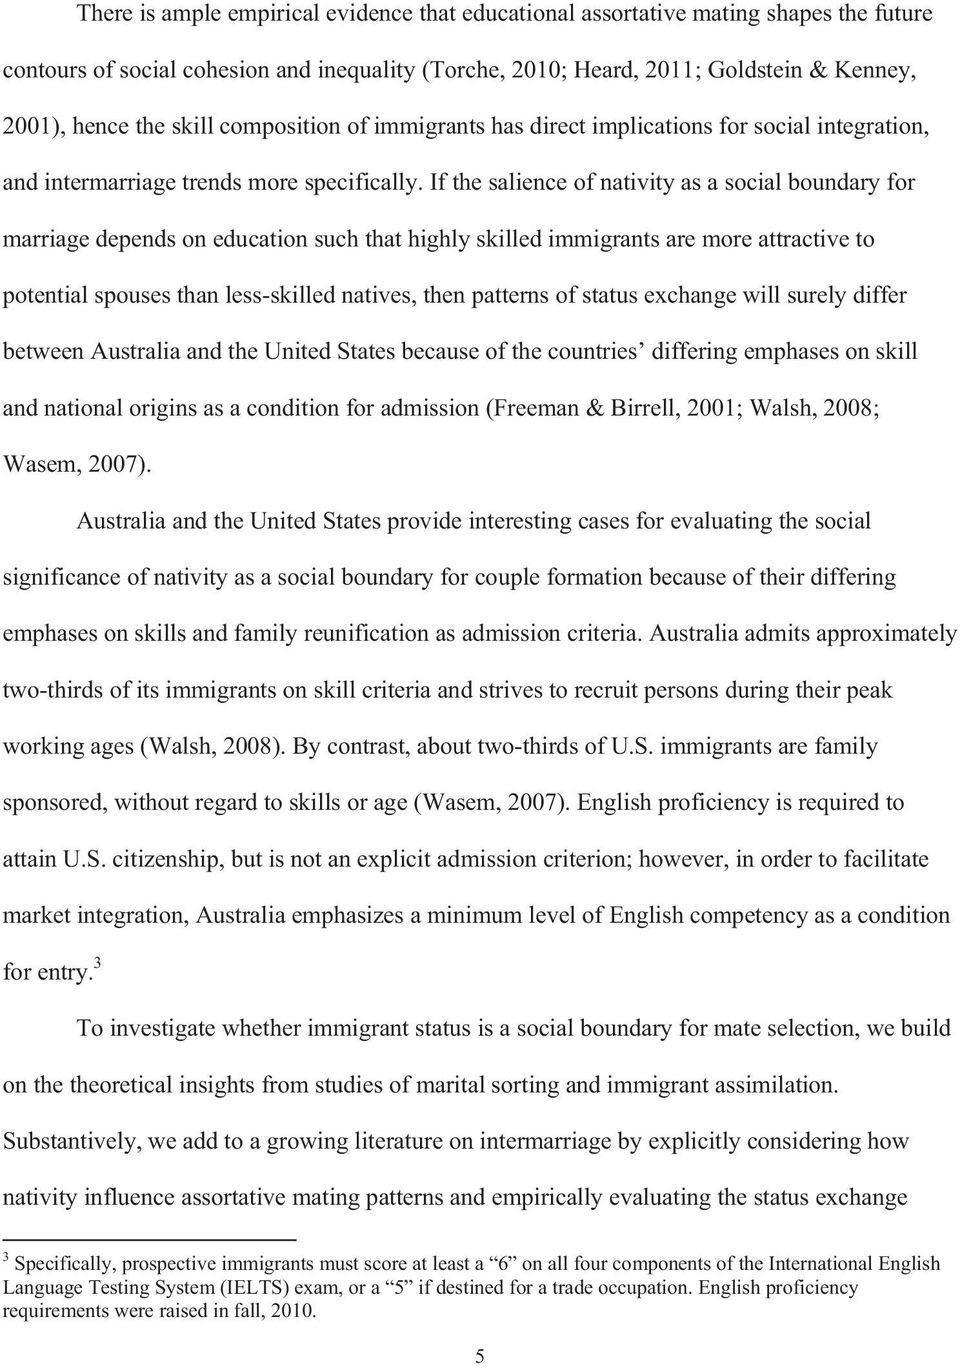 If the salience of nativity as a social boundary for marriage depends on education such that highly skilled immigrants are more attractive to potential spouses than less-skilled natives, then